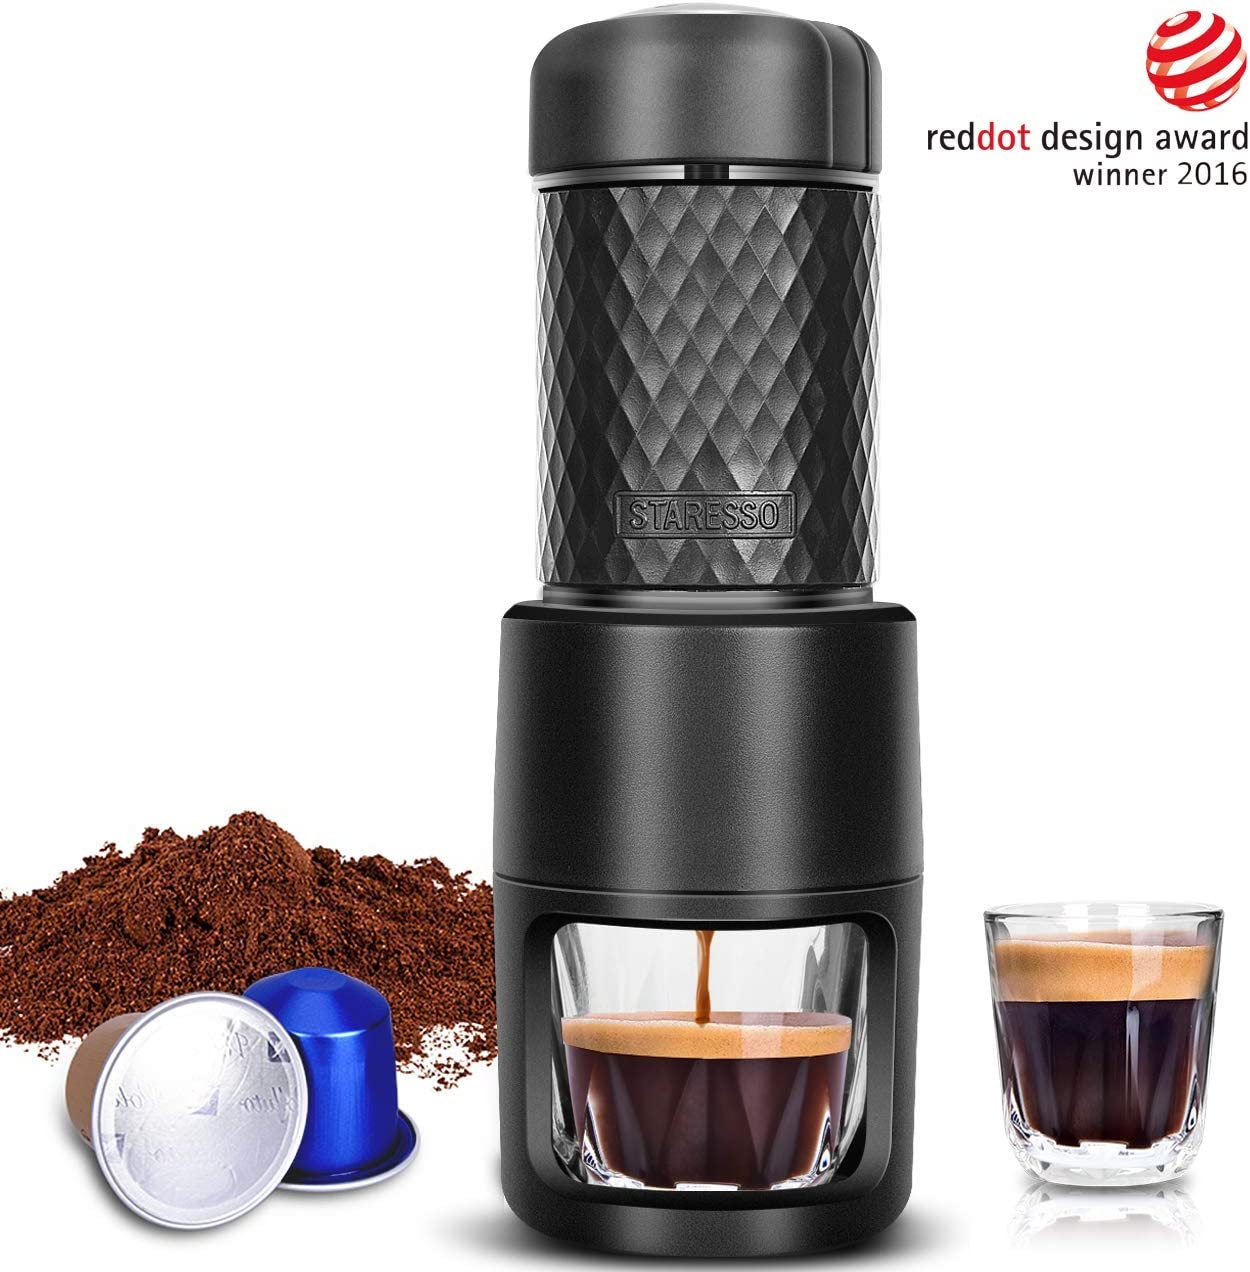 STARESSO Portable Espresso Machine - Manual Espresso for Rich & Thick Crema Mini Espresso Maker Compatible with Nespresso Pods & Ground Coffee Small ...